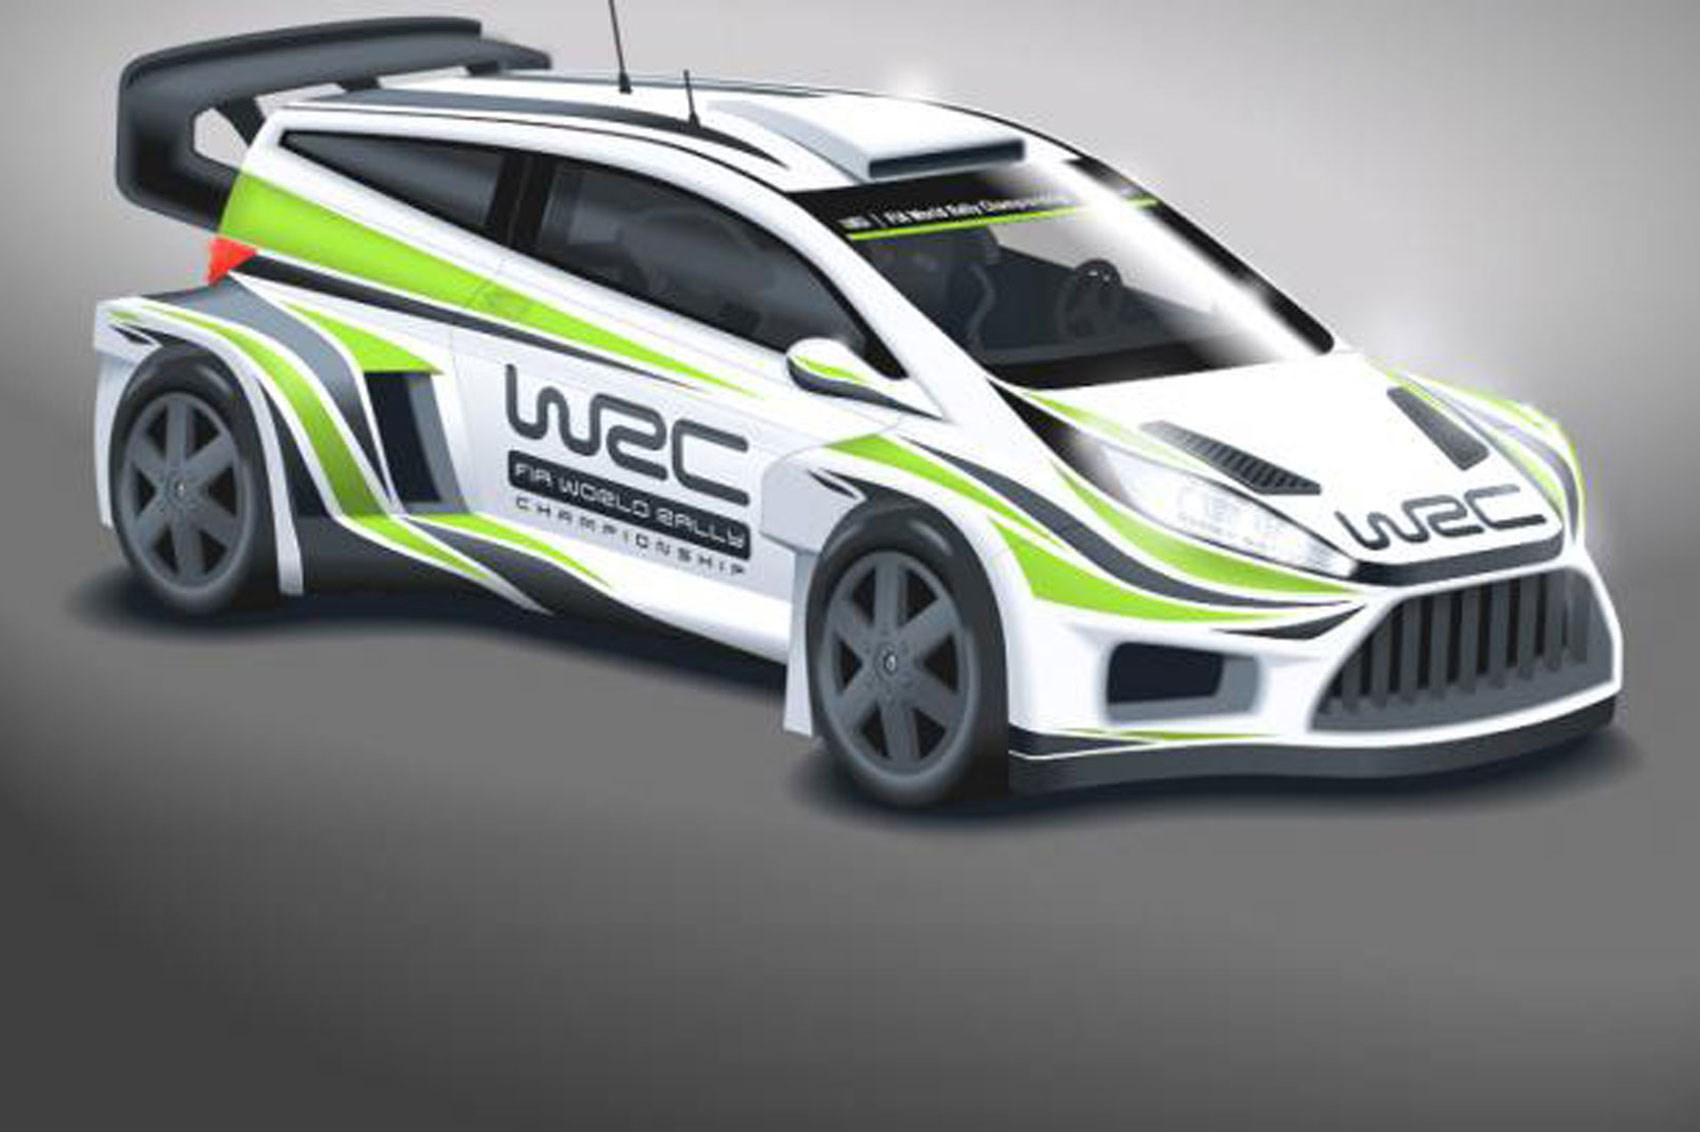 Ultrablogus  Marvellous Wild New Look For Wrc Cars In  By Car Magazine With Great Wrc Cars Will Get Wider Bodies Bigger Wings And More Power For  With Awesome Golf Gti Mk Interior Also Bmw  Series Coupe Interior In Addition New Audi A  Interior And Hyundai Ix Interior Photos As Well As Golf  Gti Interior Additionally Car Interior Duster From Carmagazinecouk With Ultrablogus  Great Wild New Look For Wrc Cars In  By Car Magazine With Awesome Wrc Cars Will Get Wider Bodies Bigger Wings And More Power For  And Marvellous Golf Gti Mk Interior Also Bmw  Series Coupe Interior In Addition New Audi A  Interior From Carmagazinecouk